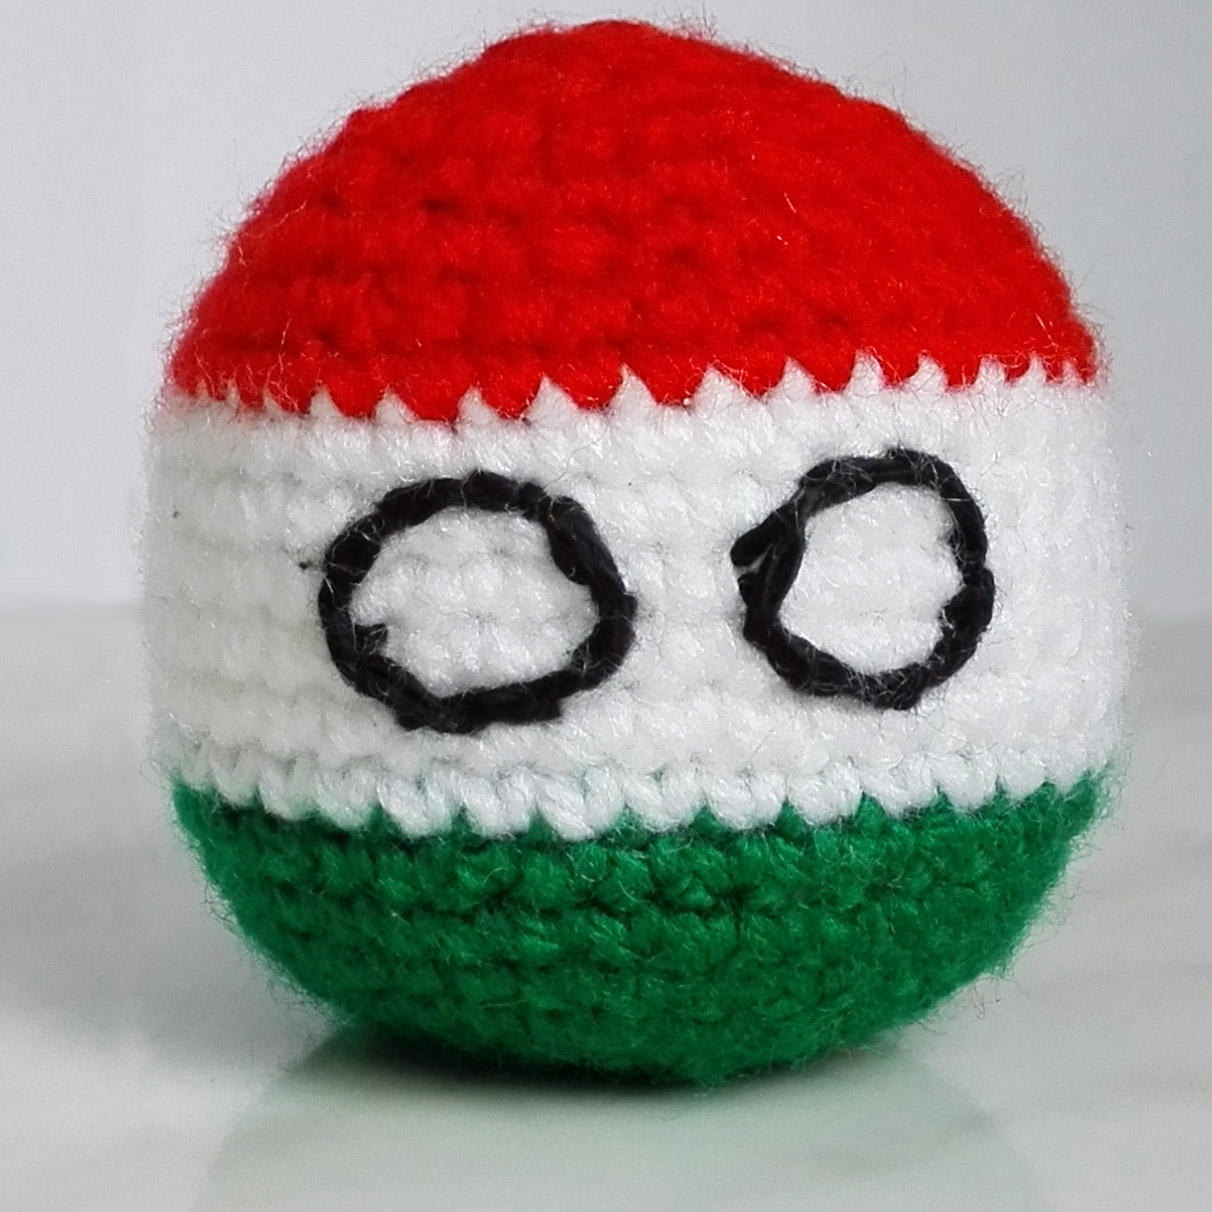 Hungaryball